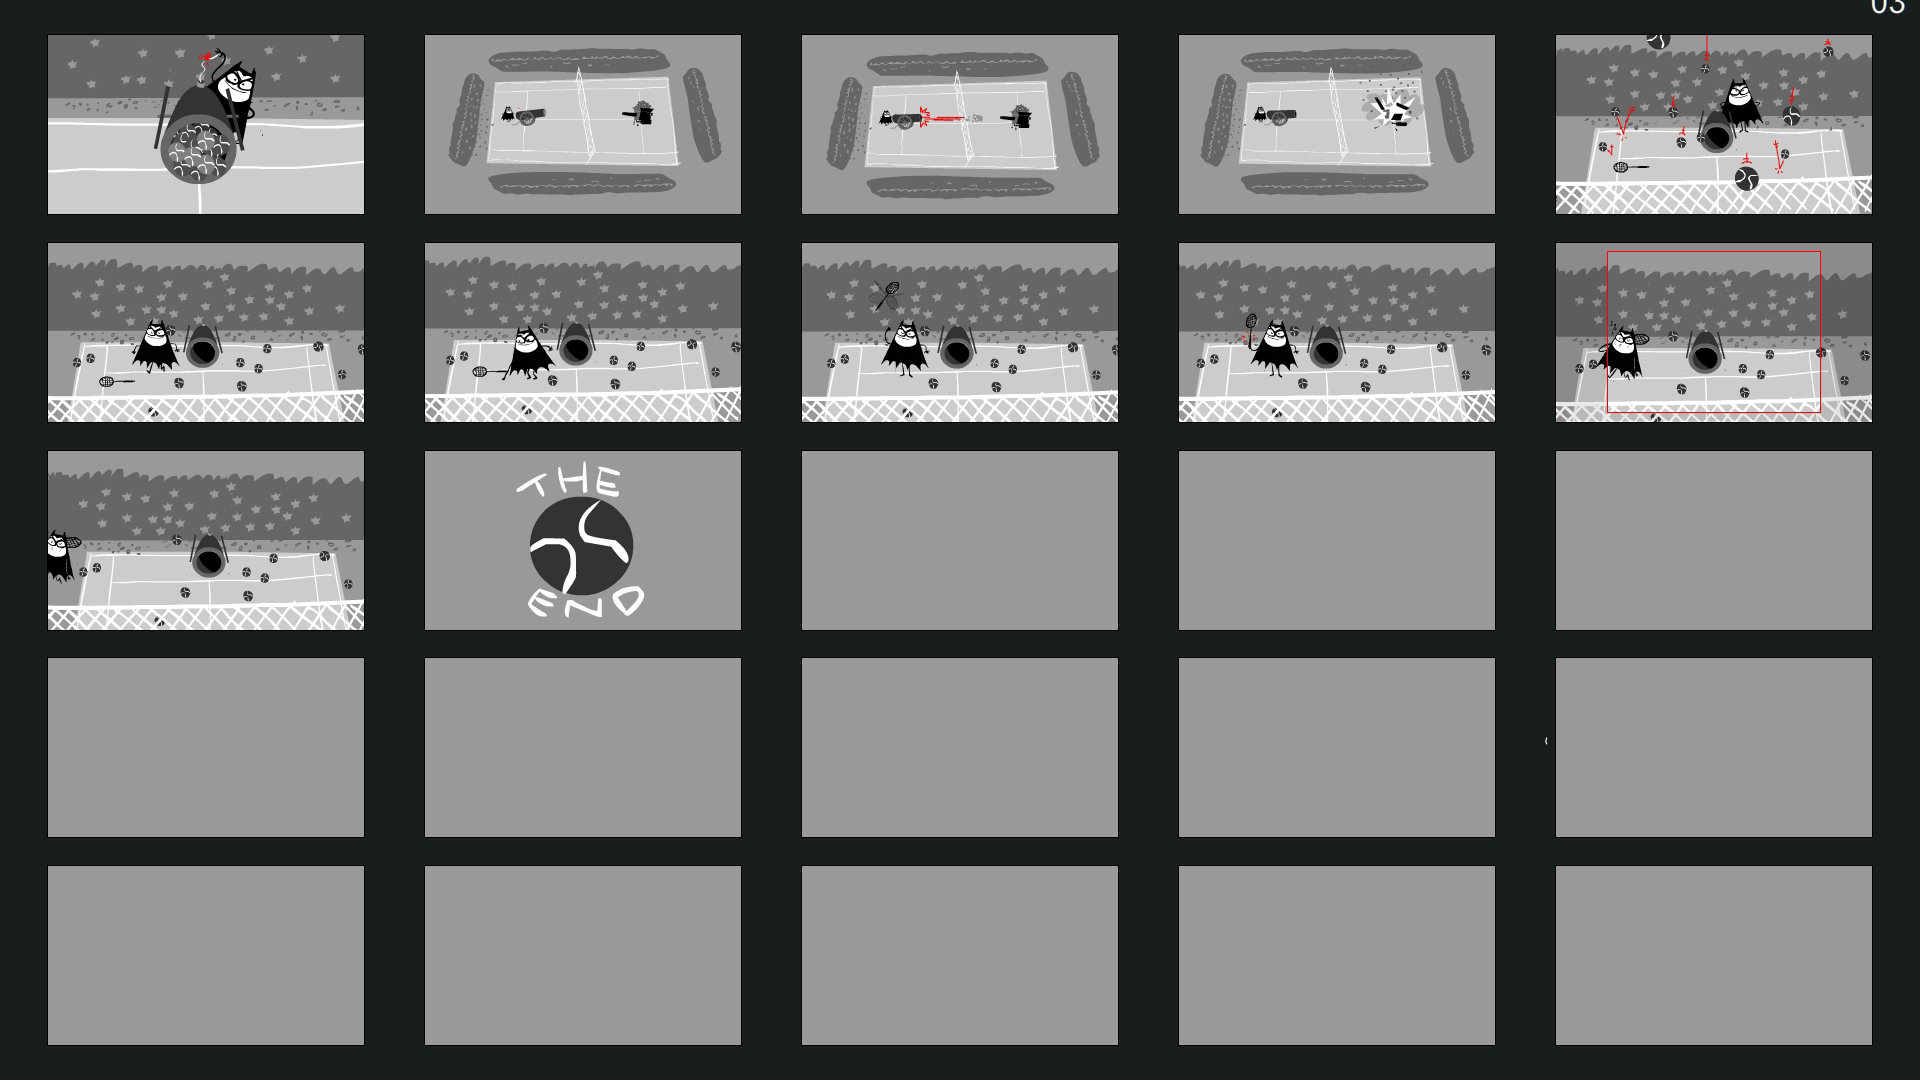 MikeOwens_STORYBOARDS_LilBat_Tennis_Page_3.png